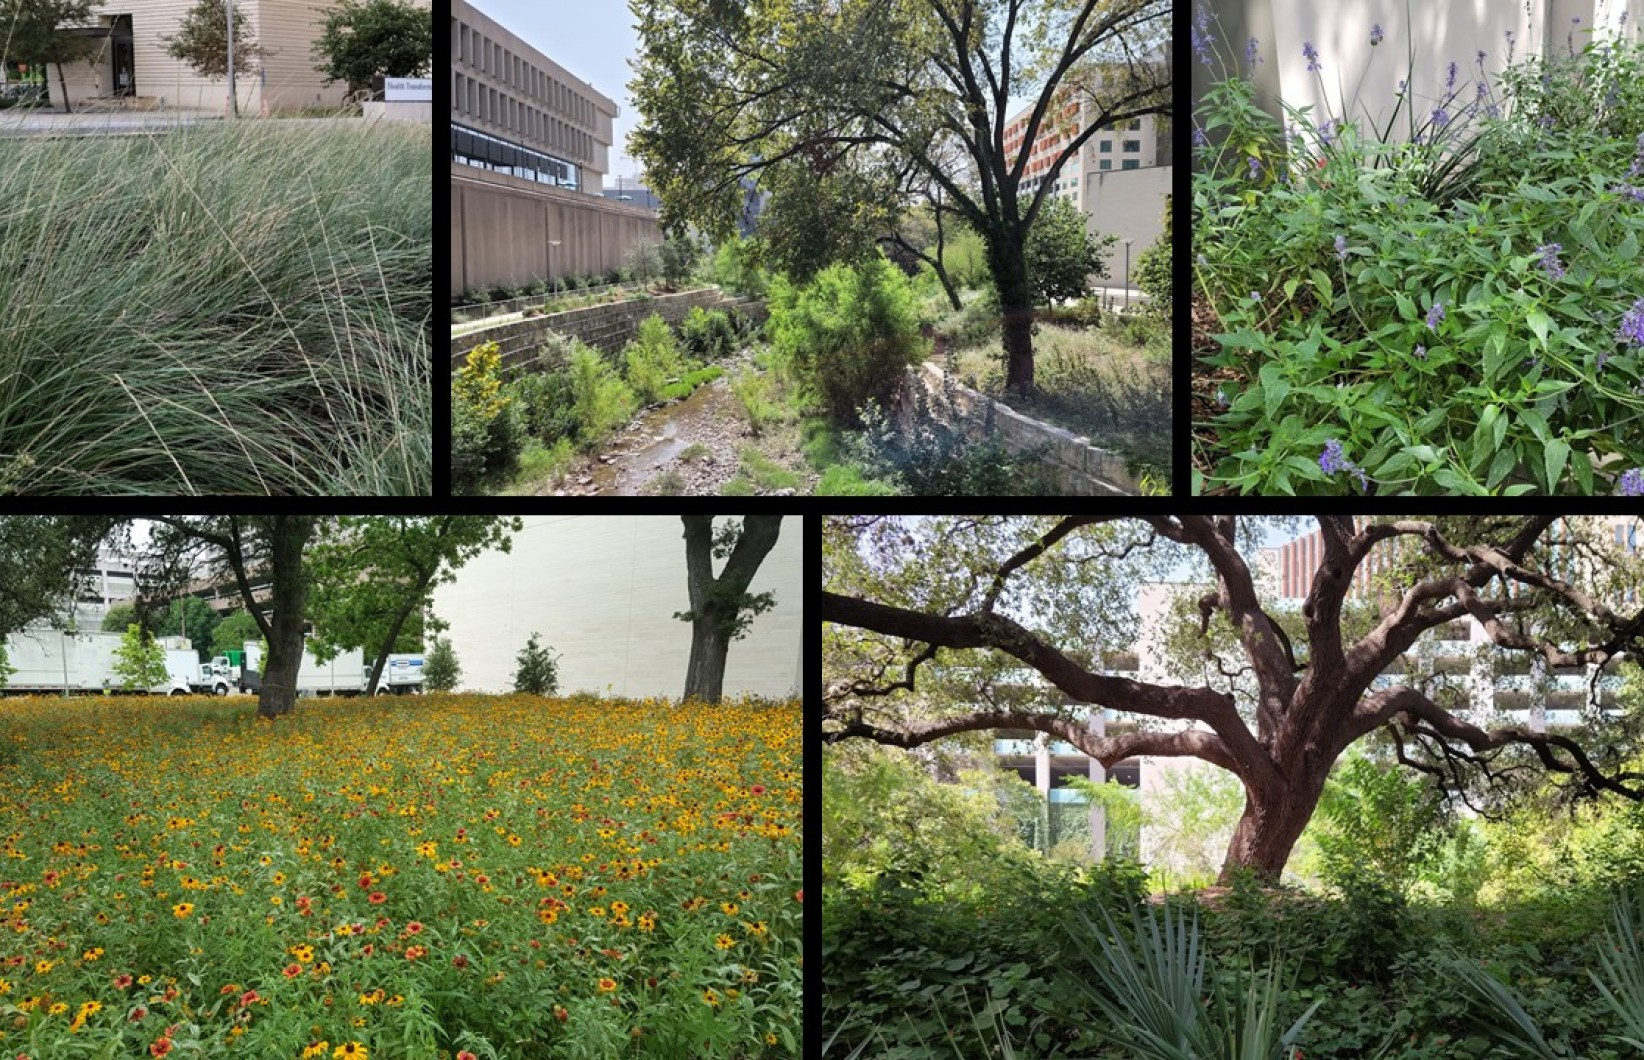 Image collage of the landscape at Dell Medical School